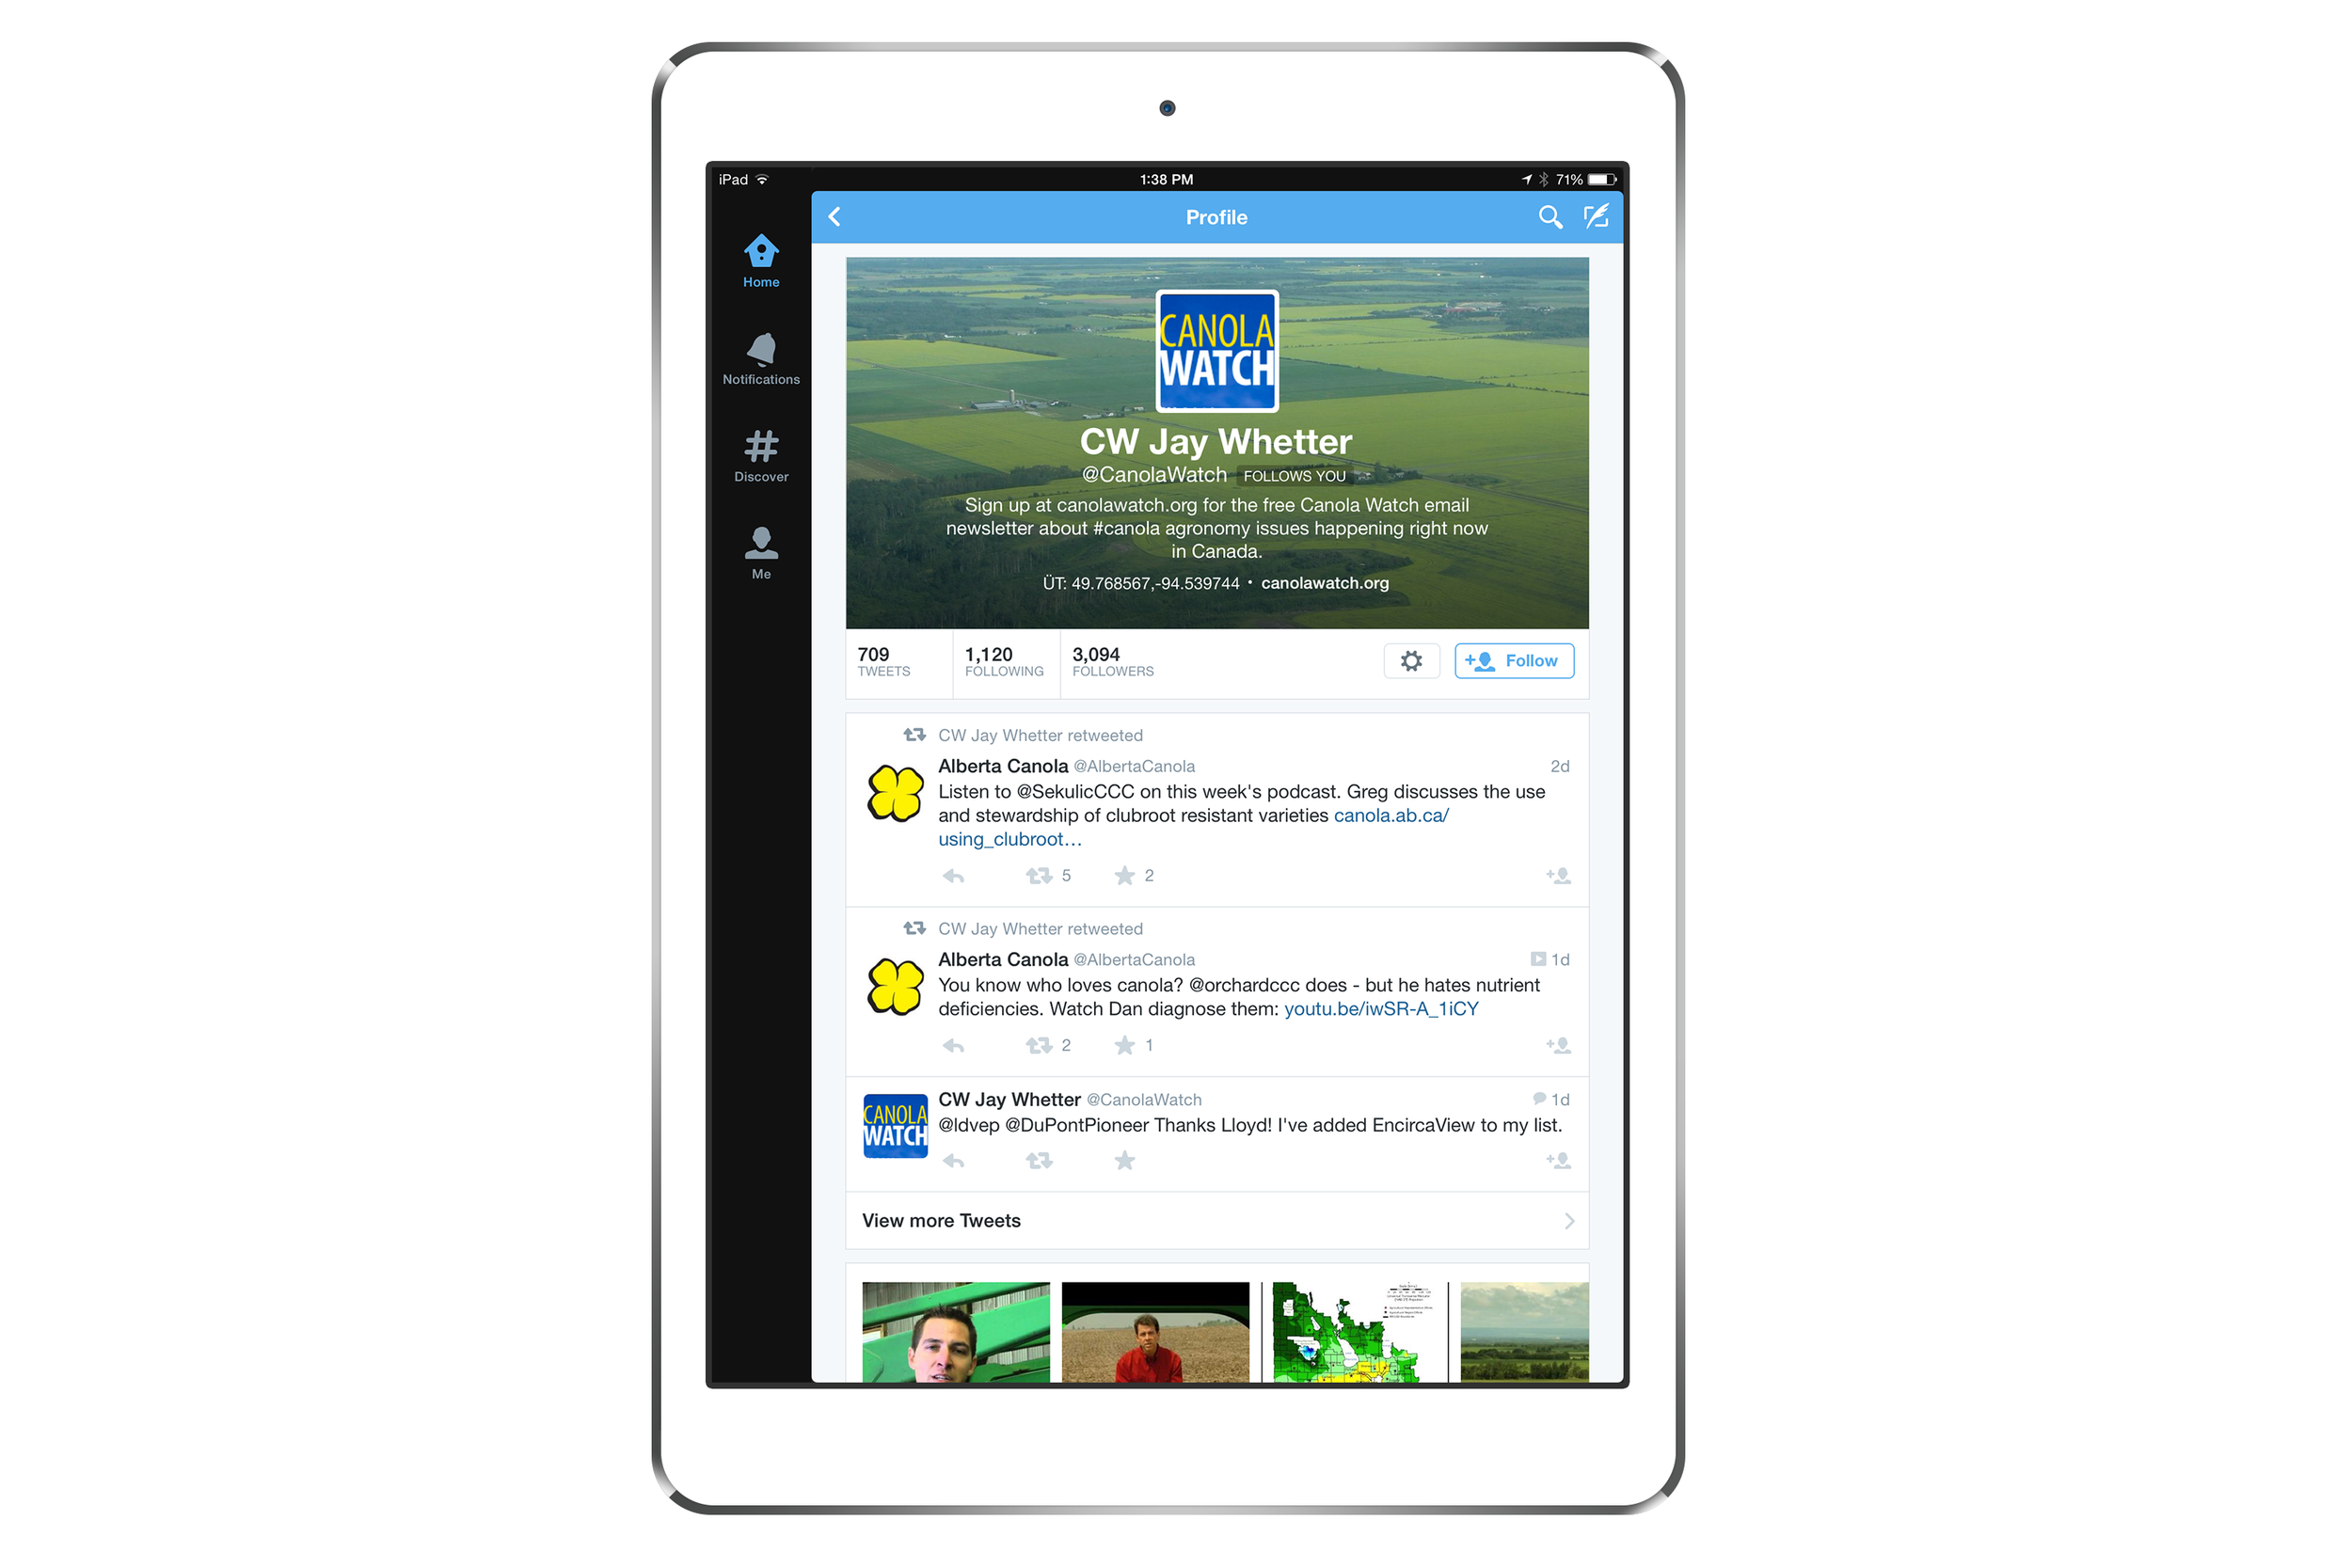 canola-watch-twitter-ipad.png